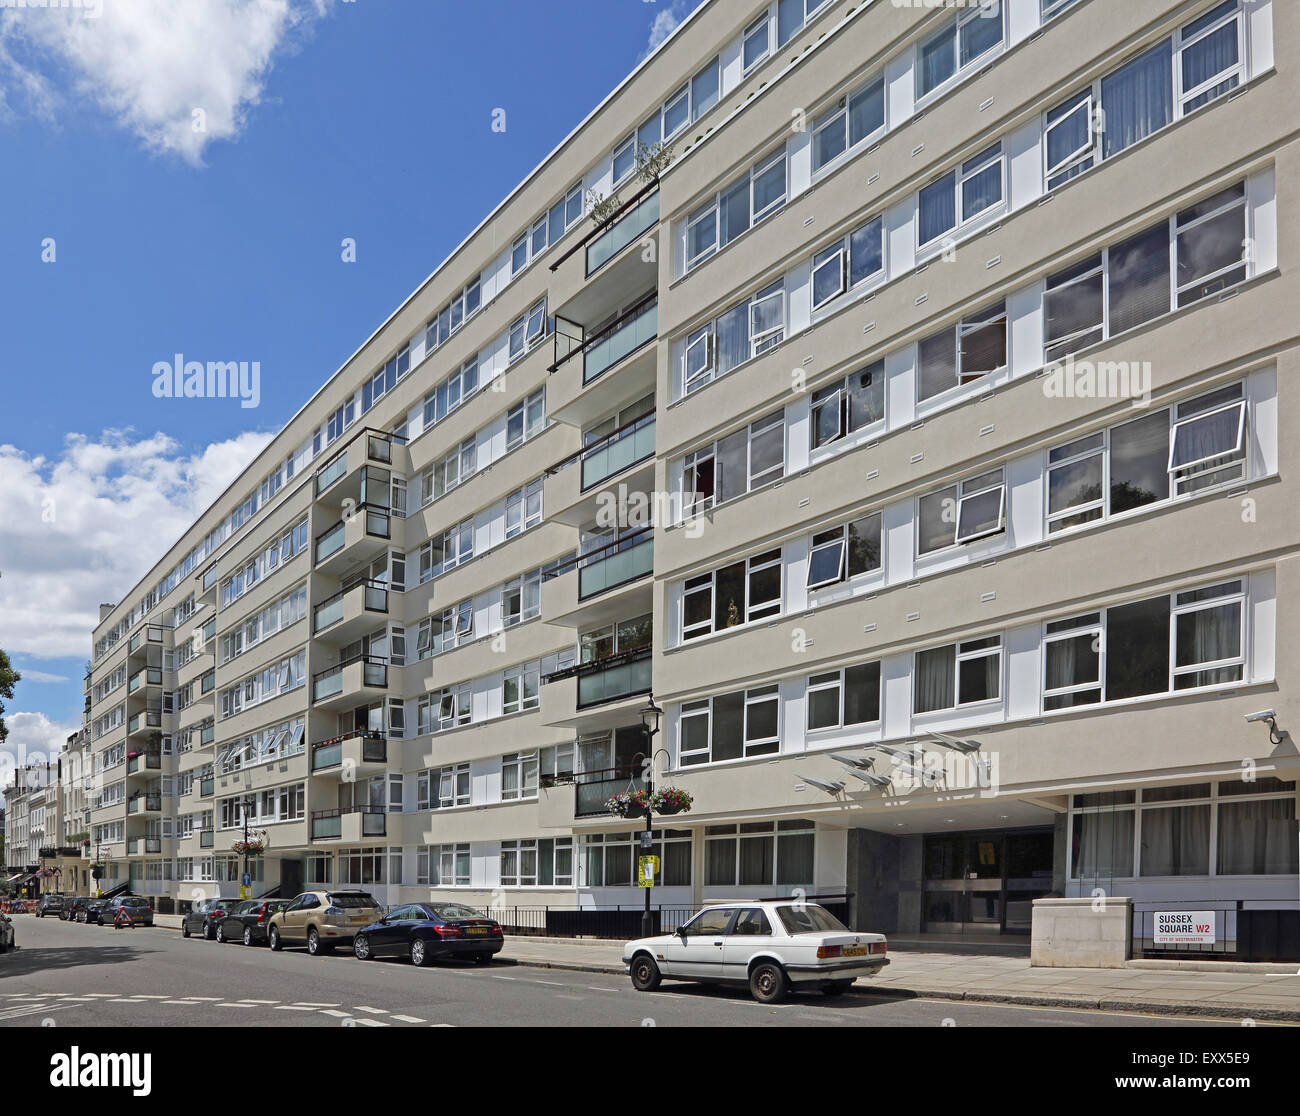 Apartment Block: A 1970's Built Apartment Block In Central London Following